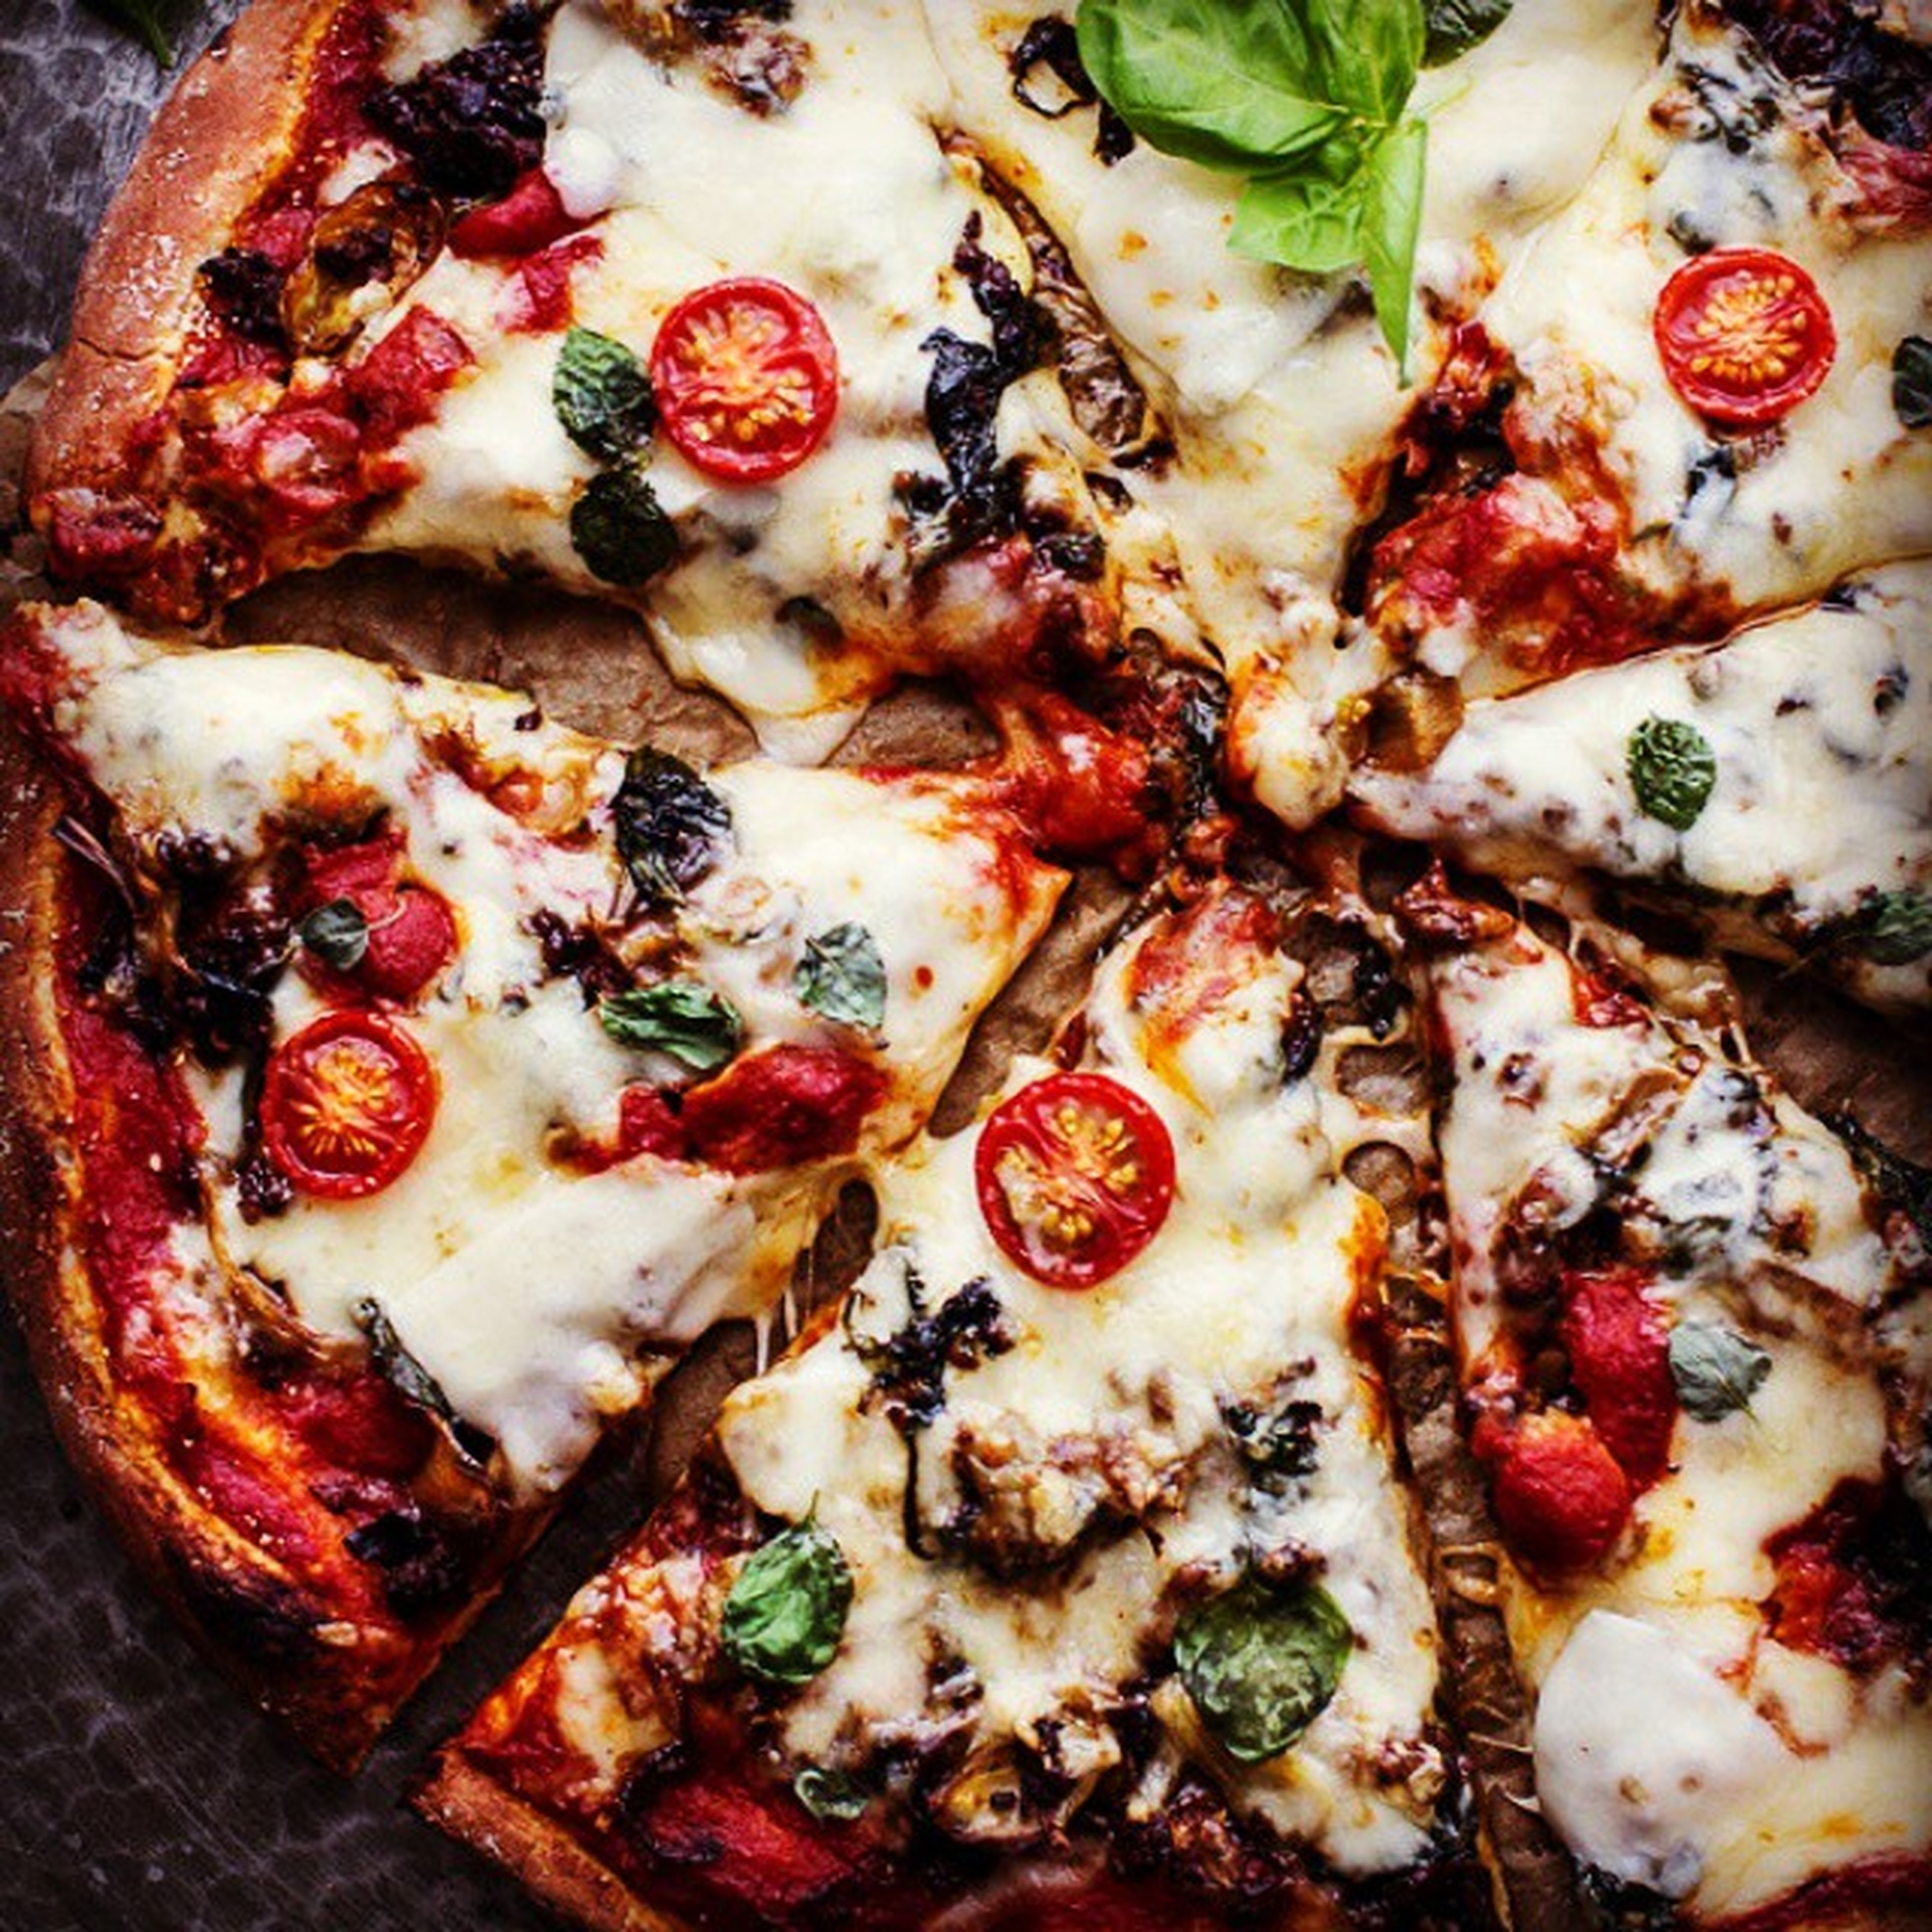 food and drink, food, freshness, ready-to-eat, indoors, still life, pizza, healthy eating, indulgence, close-up, serving size, temptation, full frame, high angle view, meal, meat, plate, slice, no people